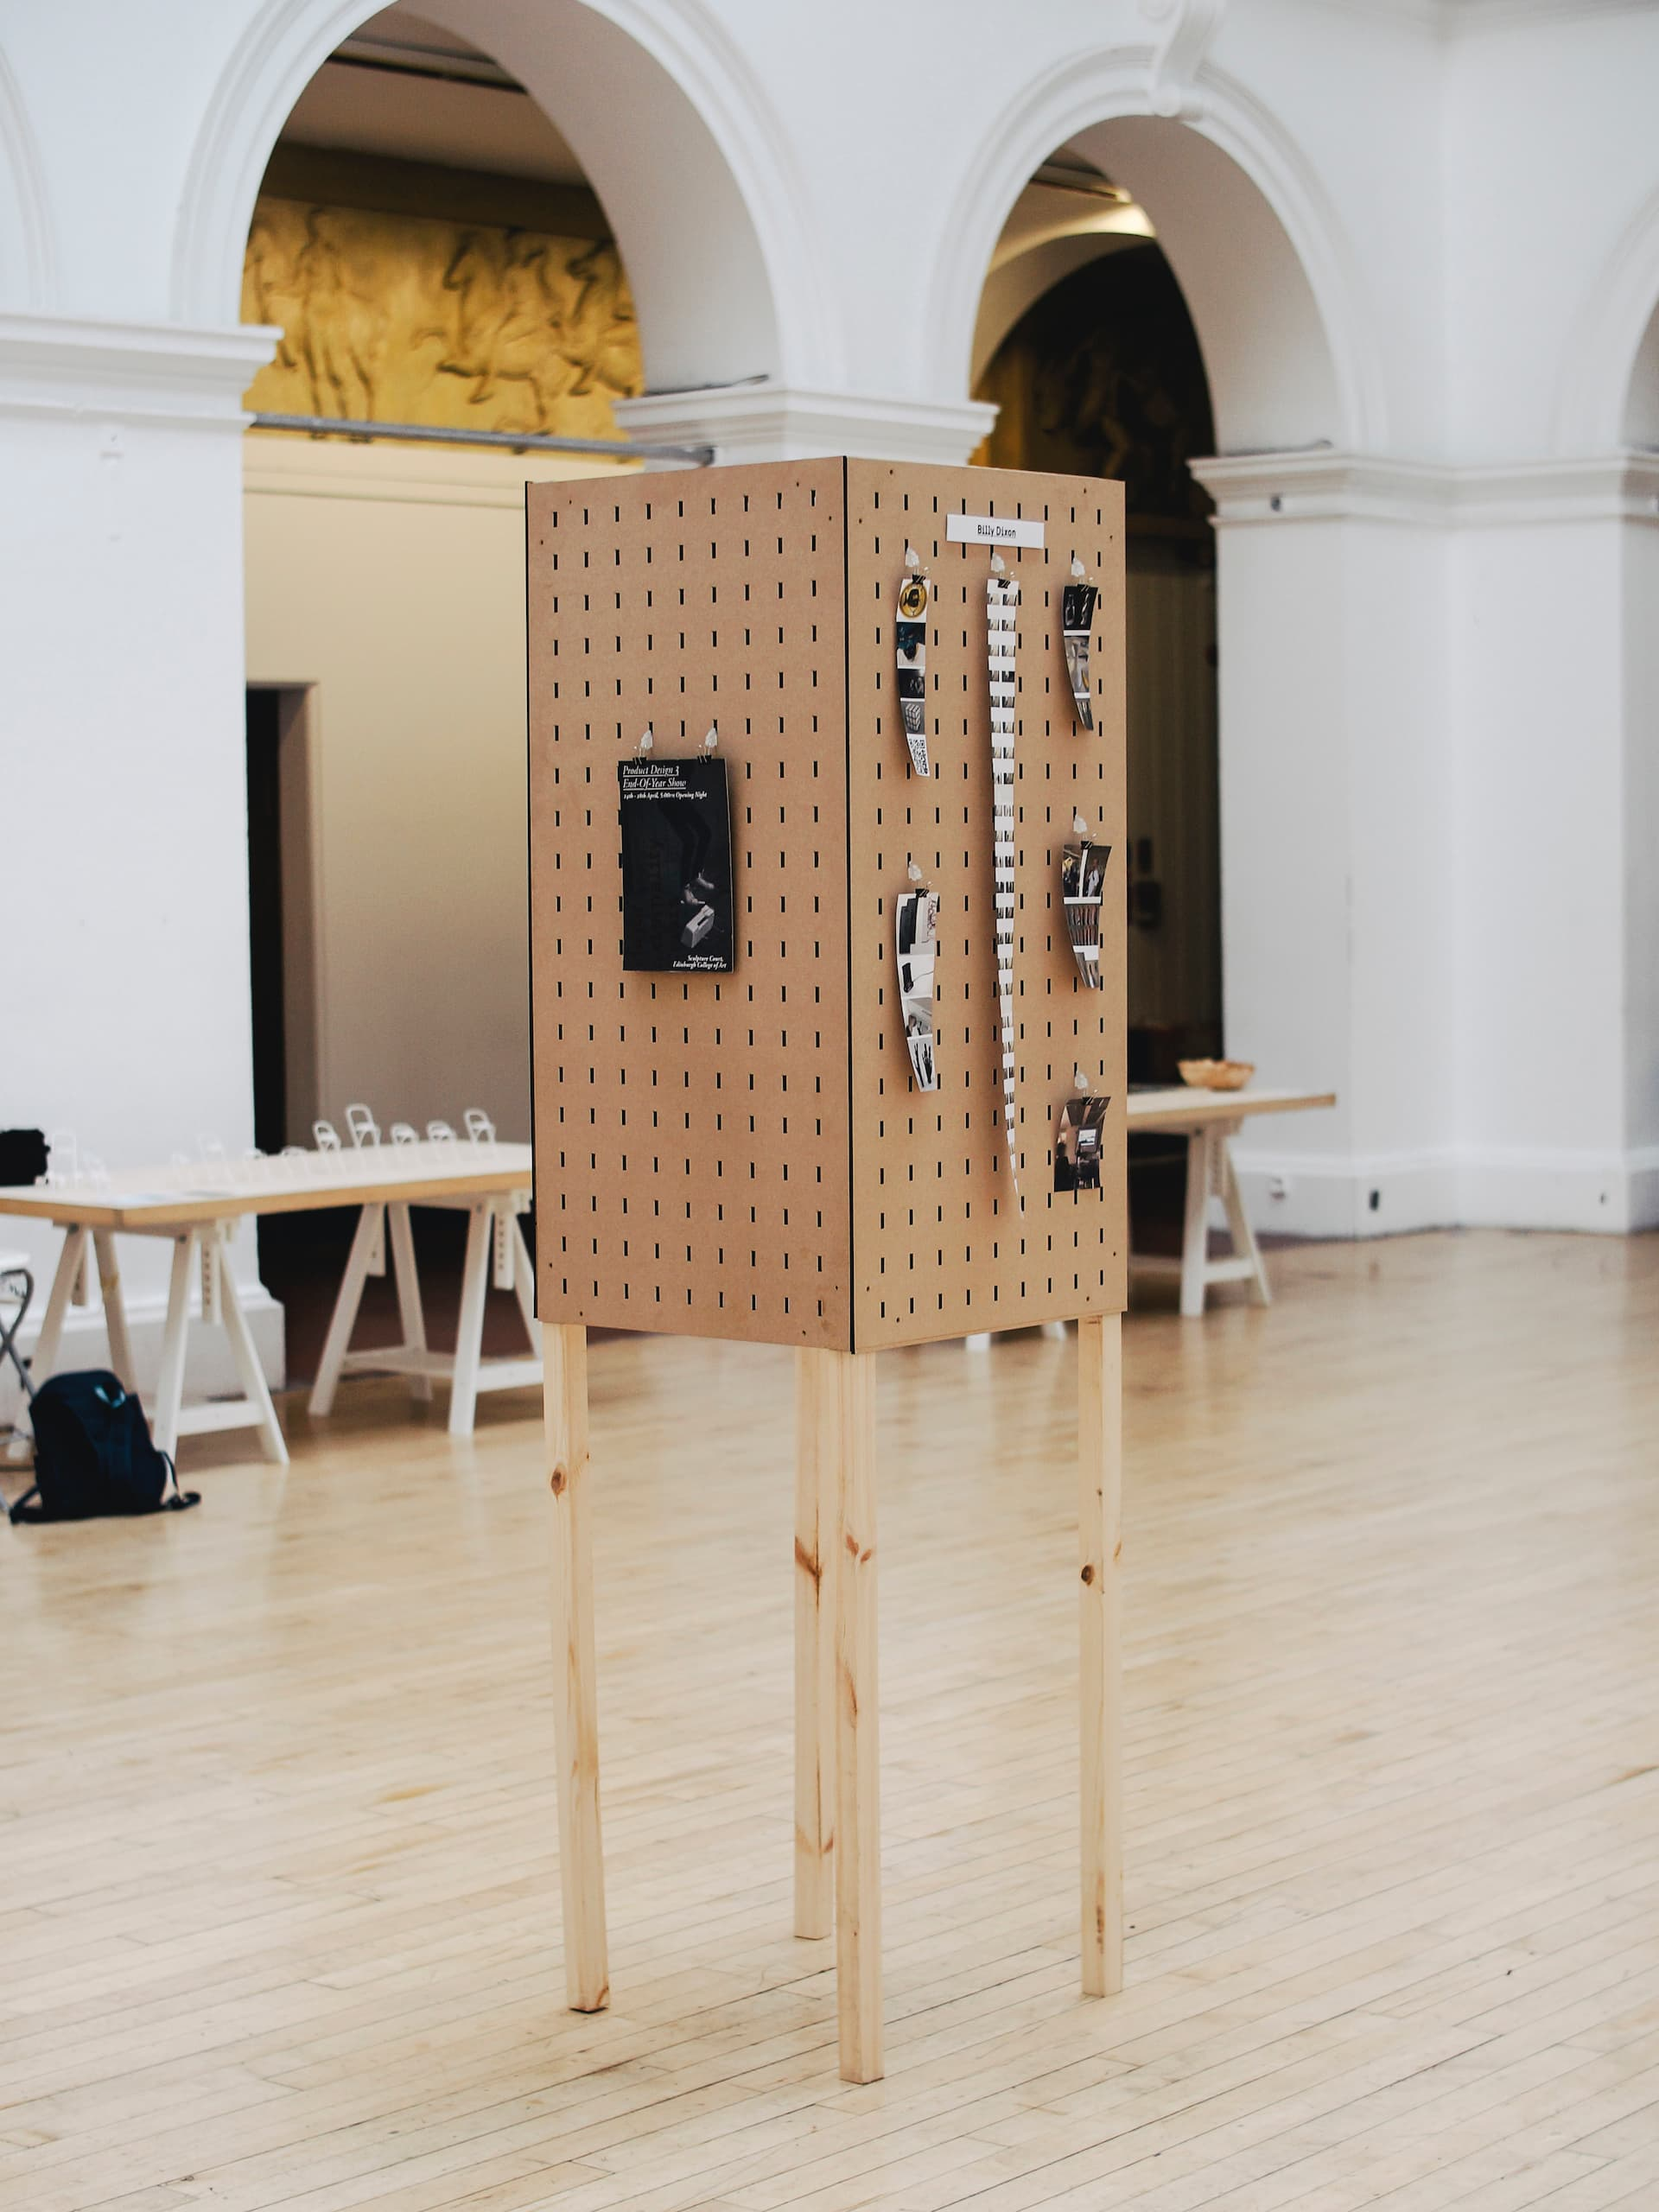 Exhibition identity of 3rd Year Product Design work at the intersection of technology and craft. Open to the public at Edinburgh College of Art Sculpture Court and running April 24th to April 28th.